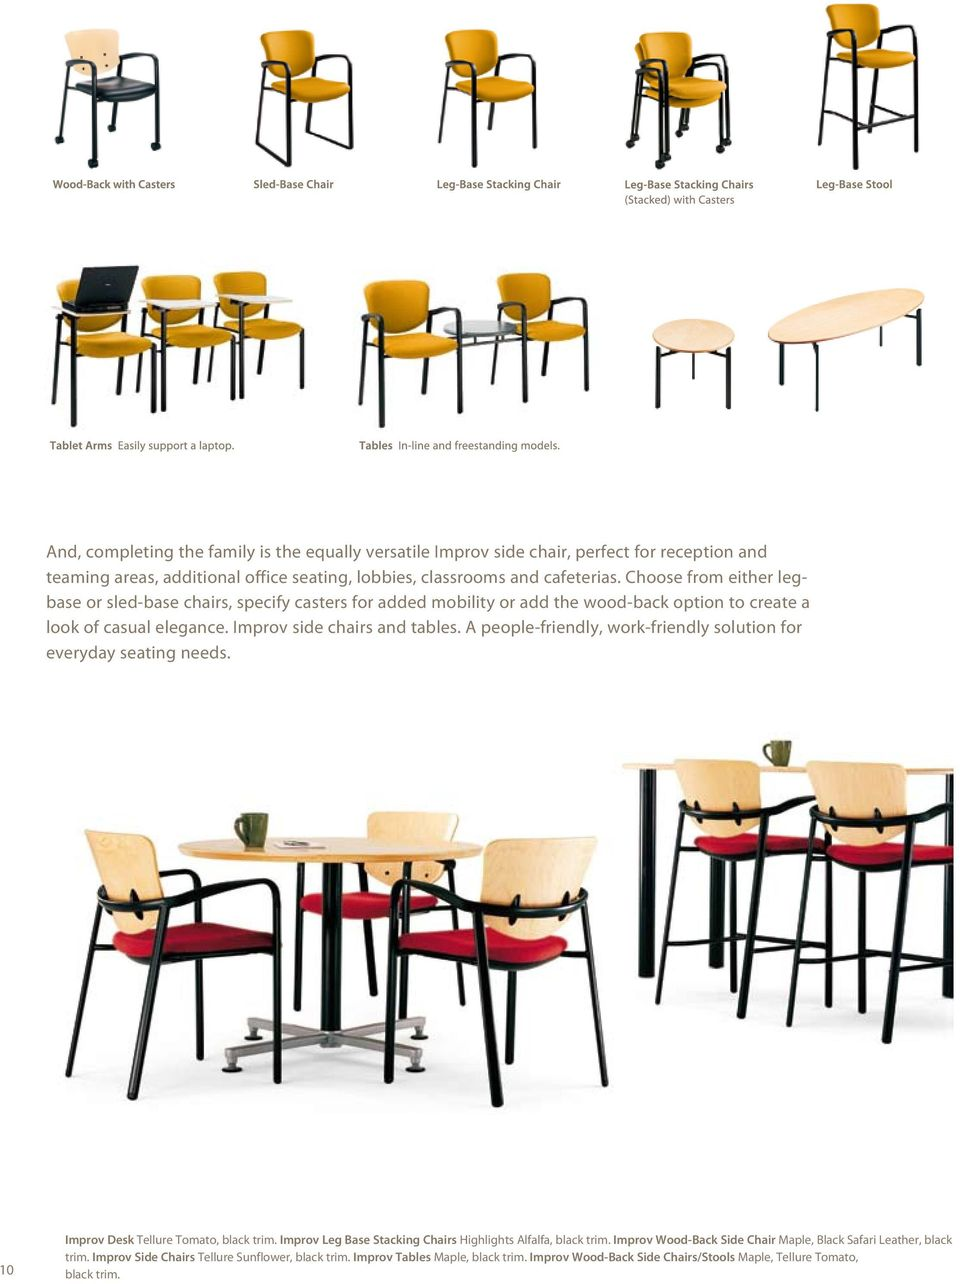 A people-friendly, work-friendly solution for everyday seating needs. 10 Improv Desk Tellure Tomato, black trim. Improv Leg Base Stacking Chairs Highlights Alfalfa, black trim.